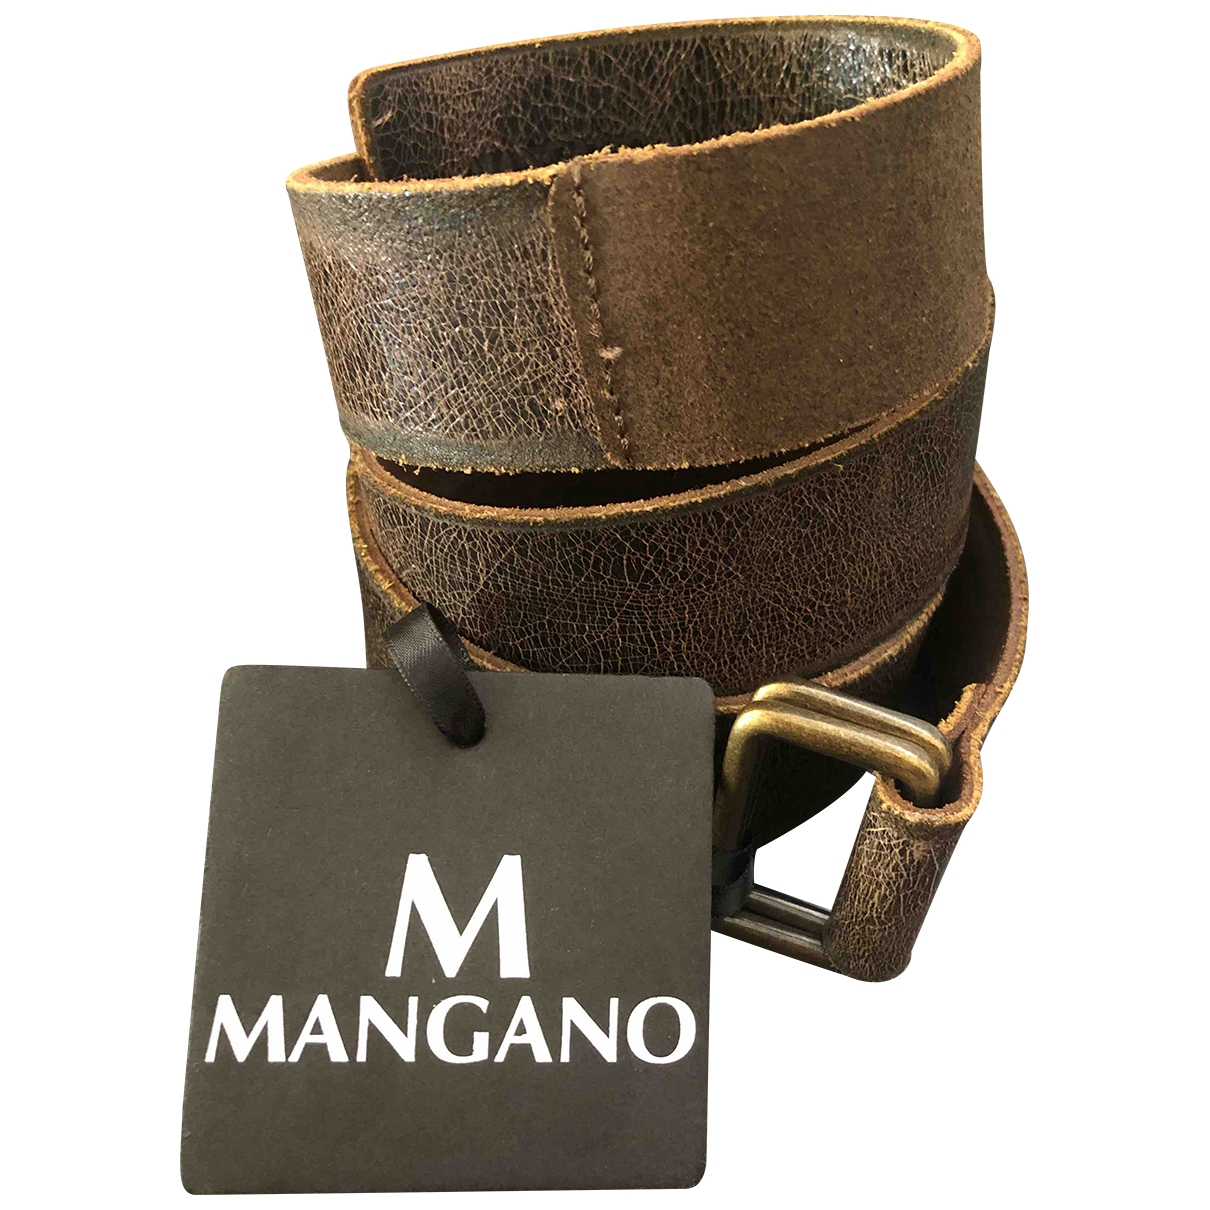 Mangano \N Brown Leather belt for Women 95 cm